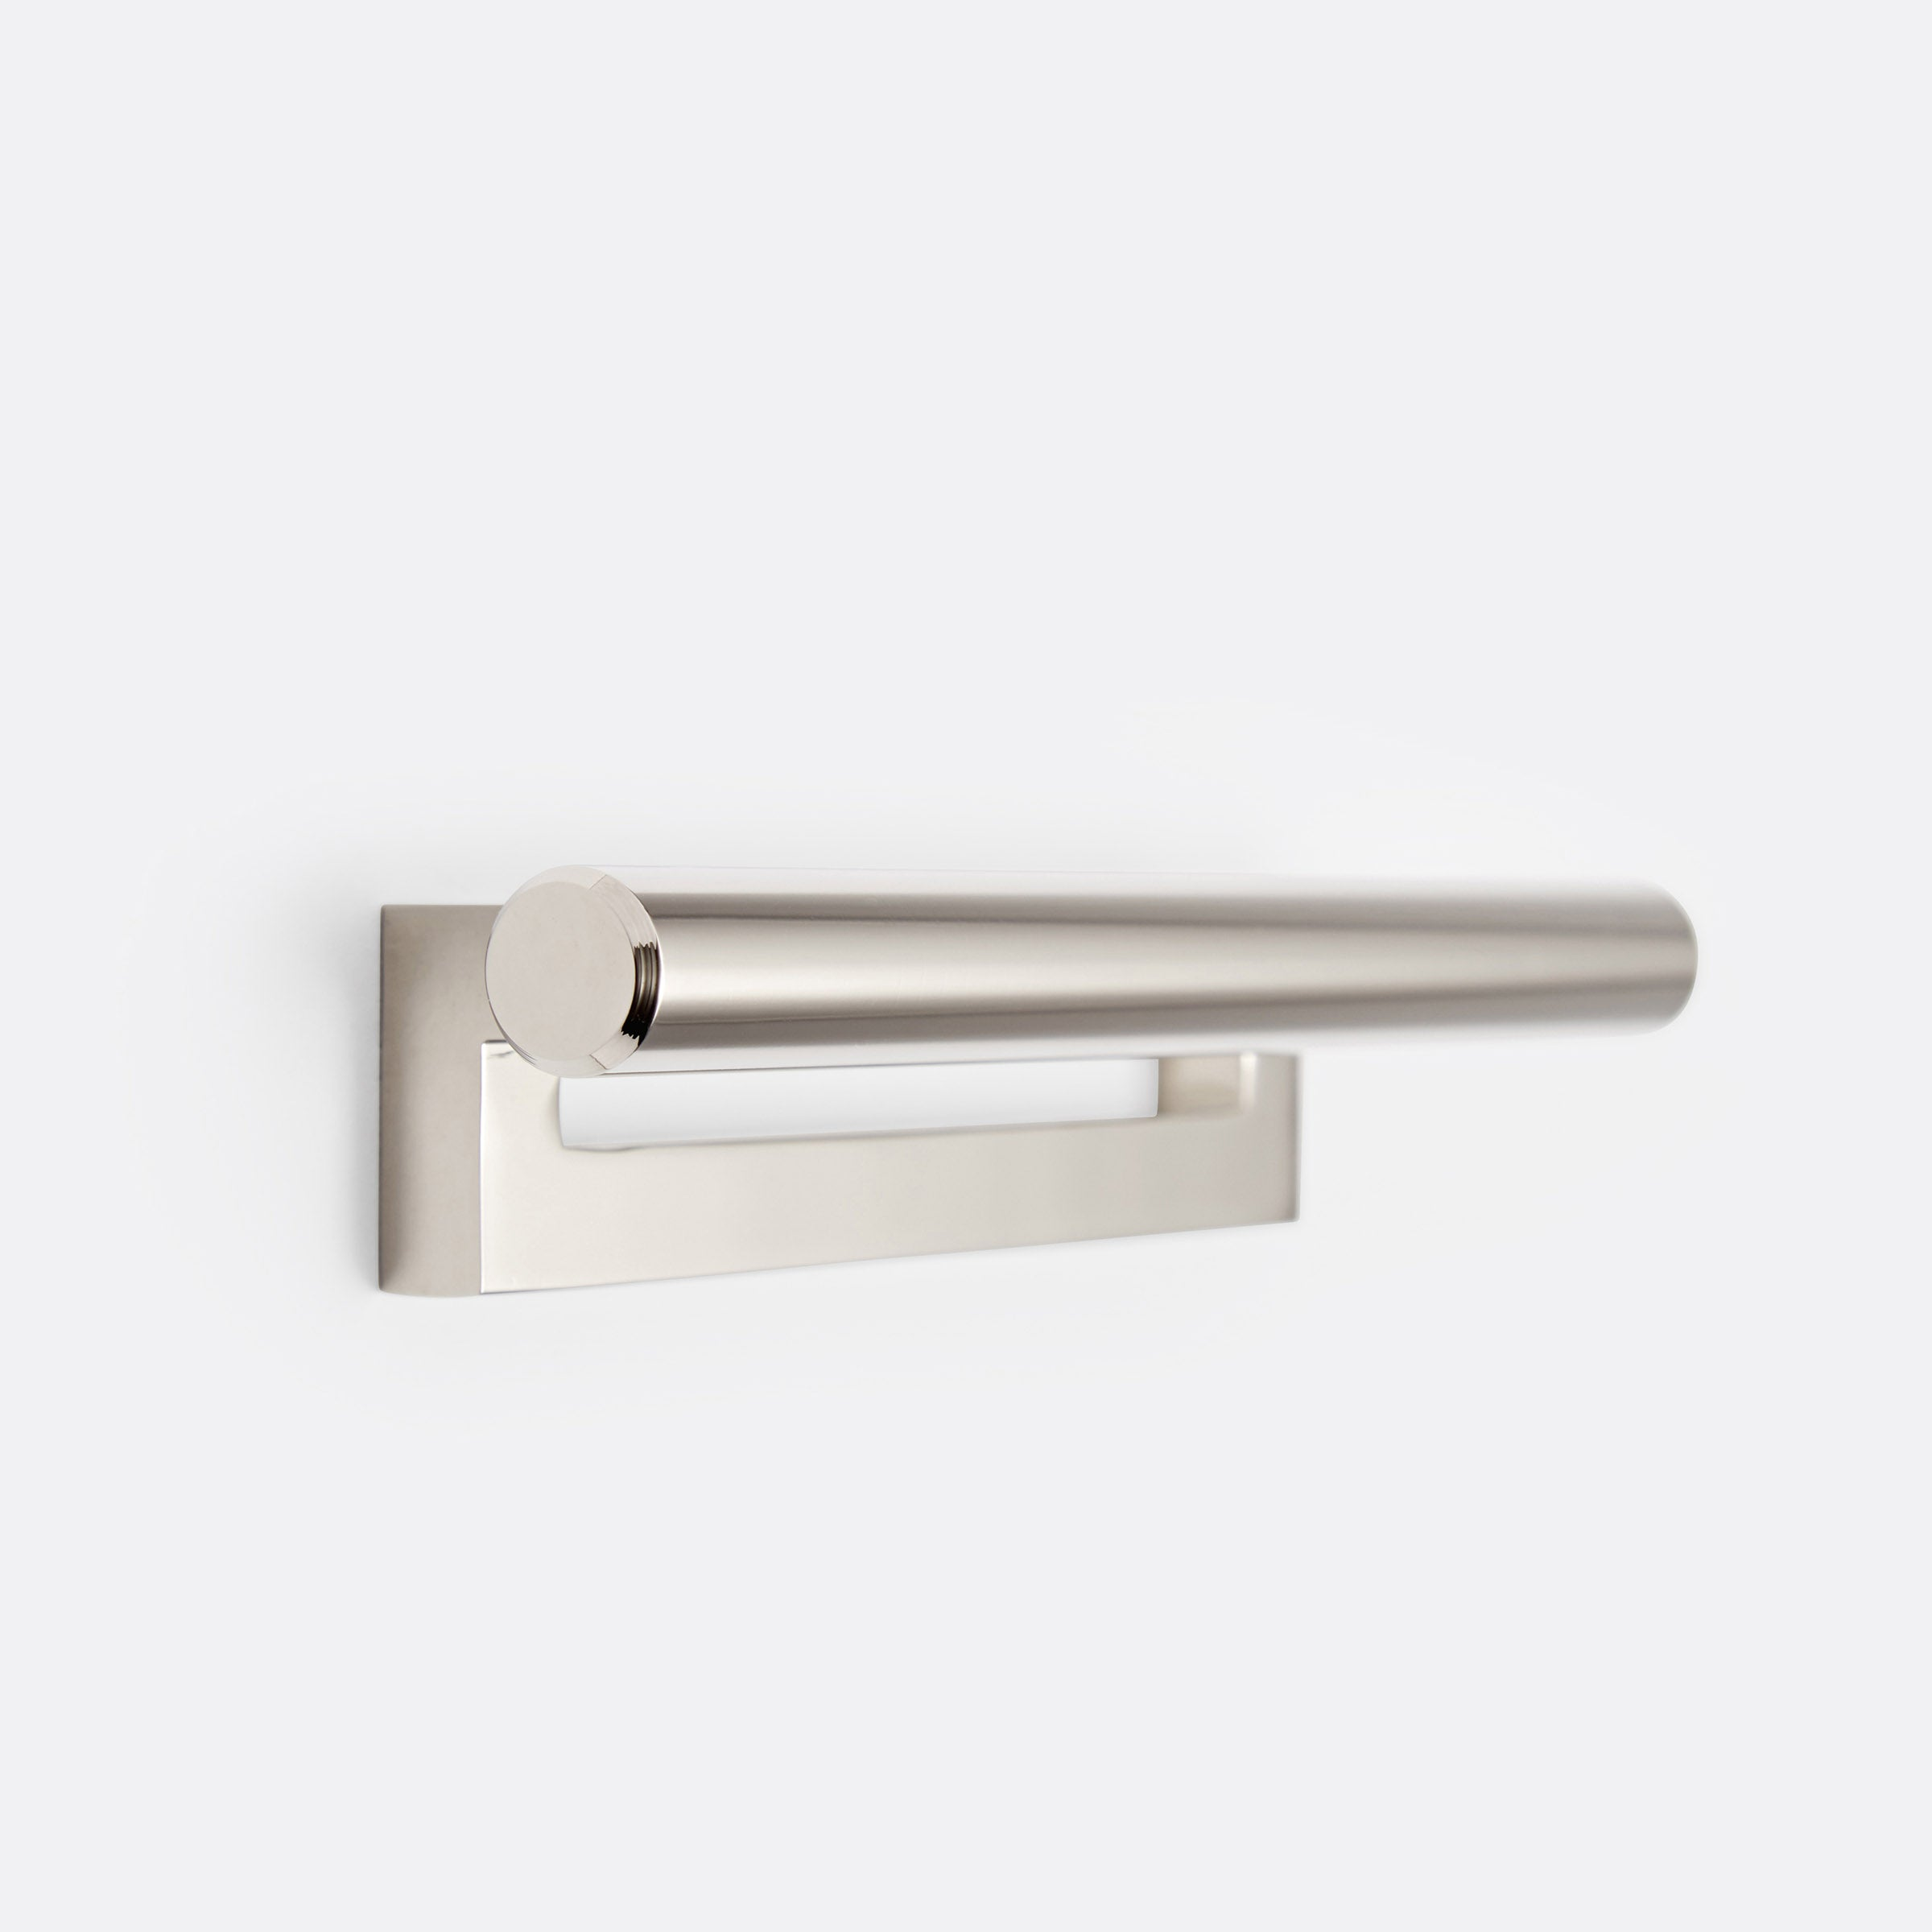 "Upton Drawer Pull by Rejuvenation 4"" / Polished Nickel"